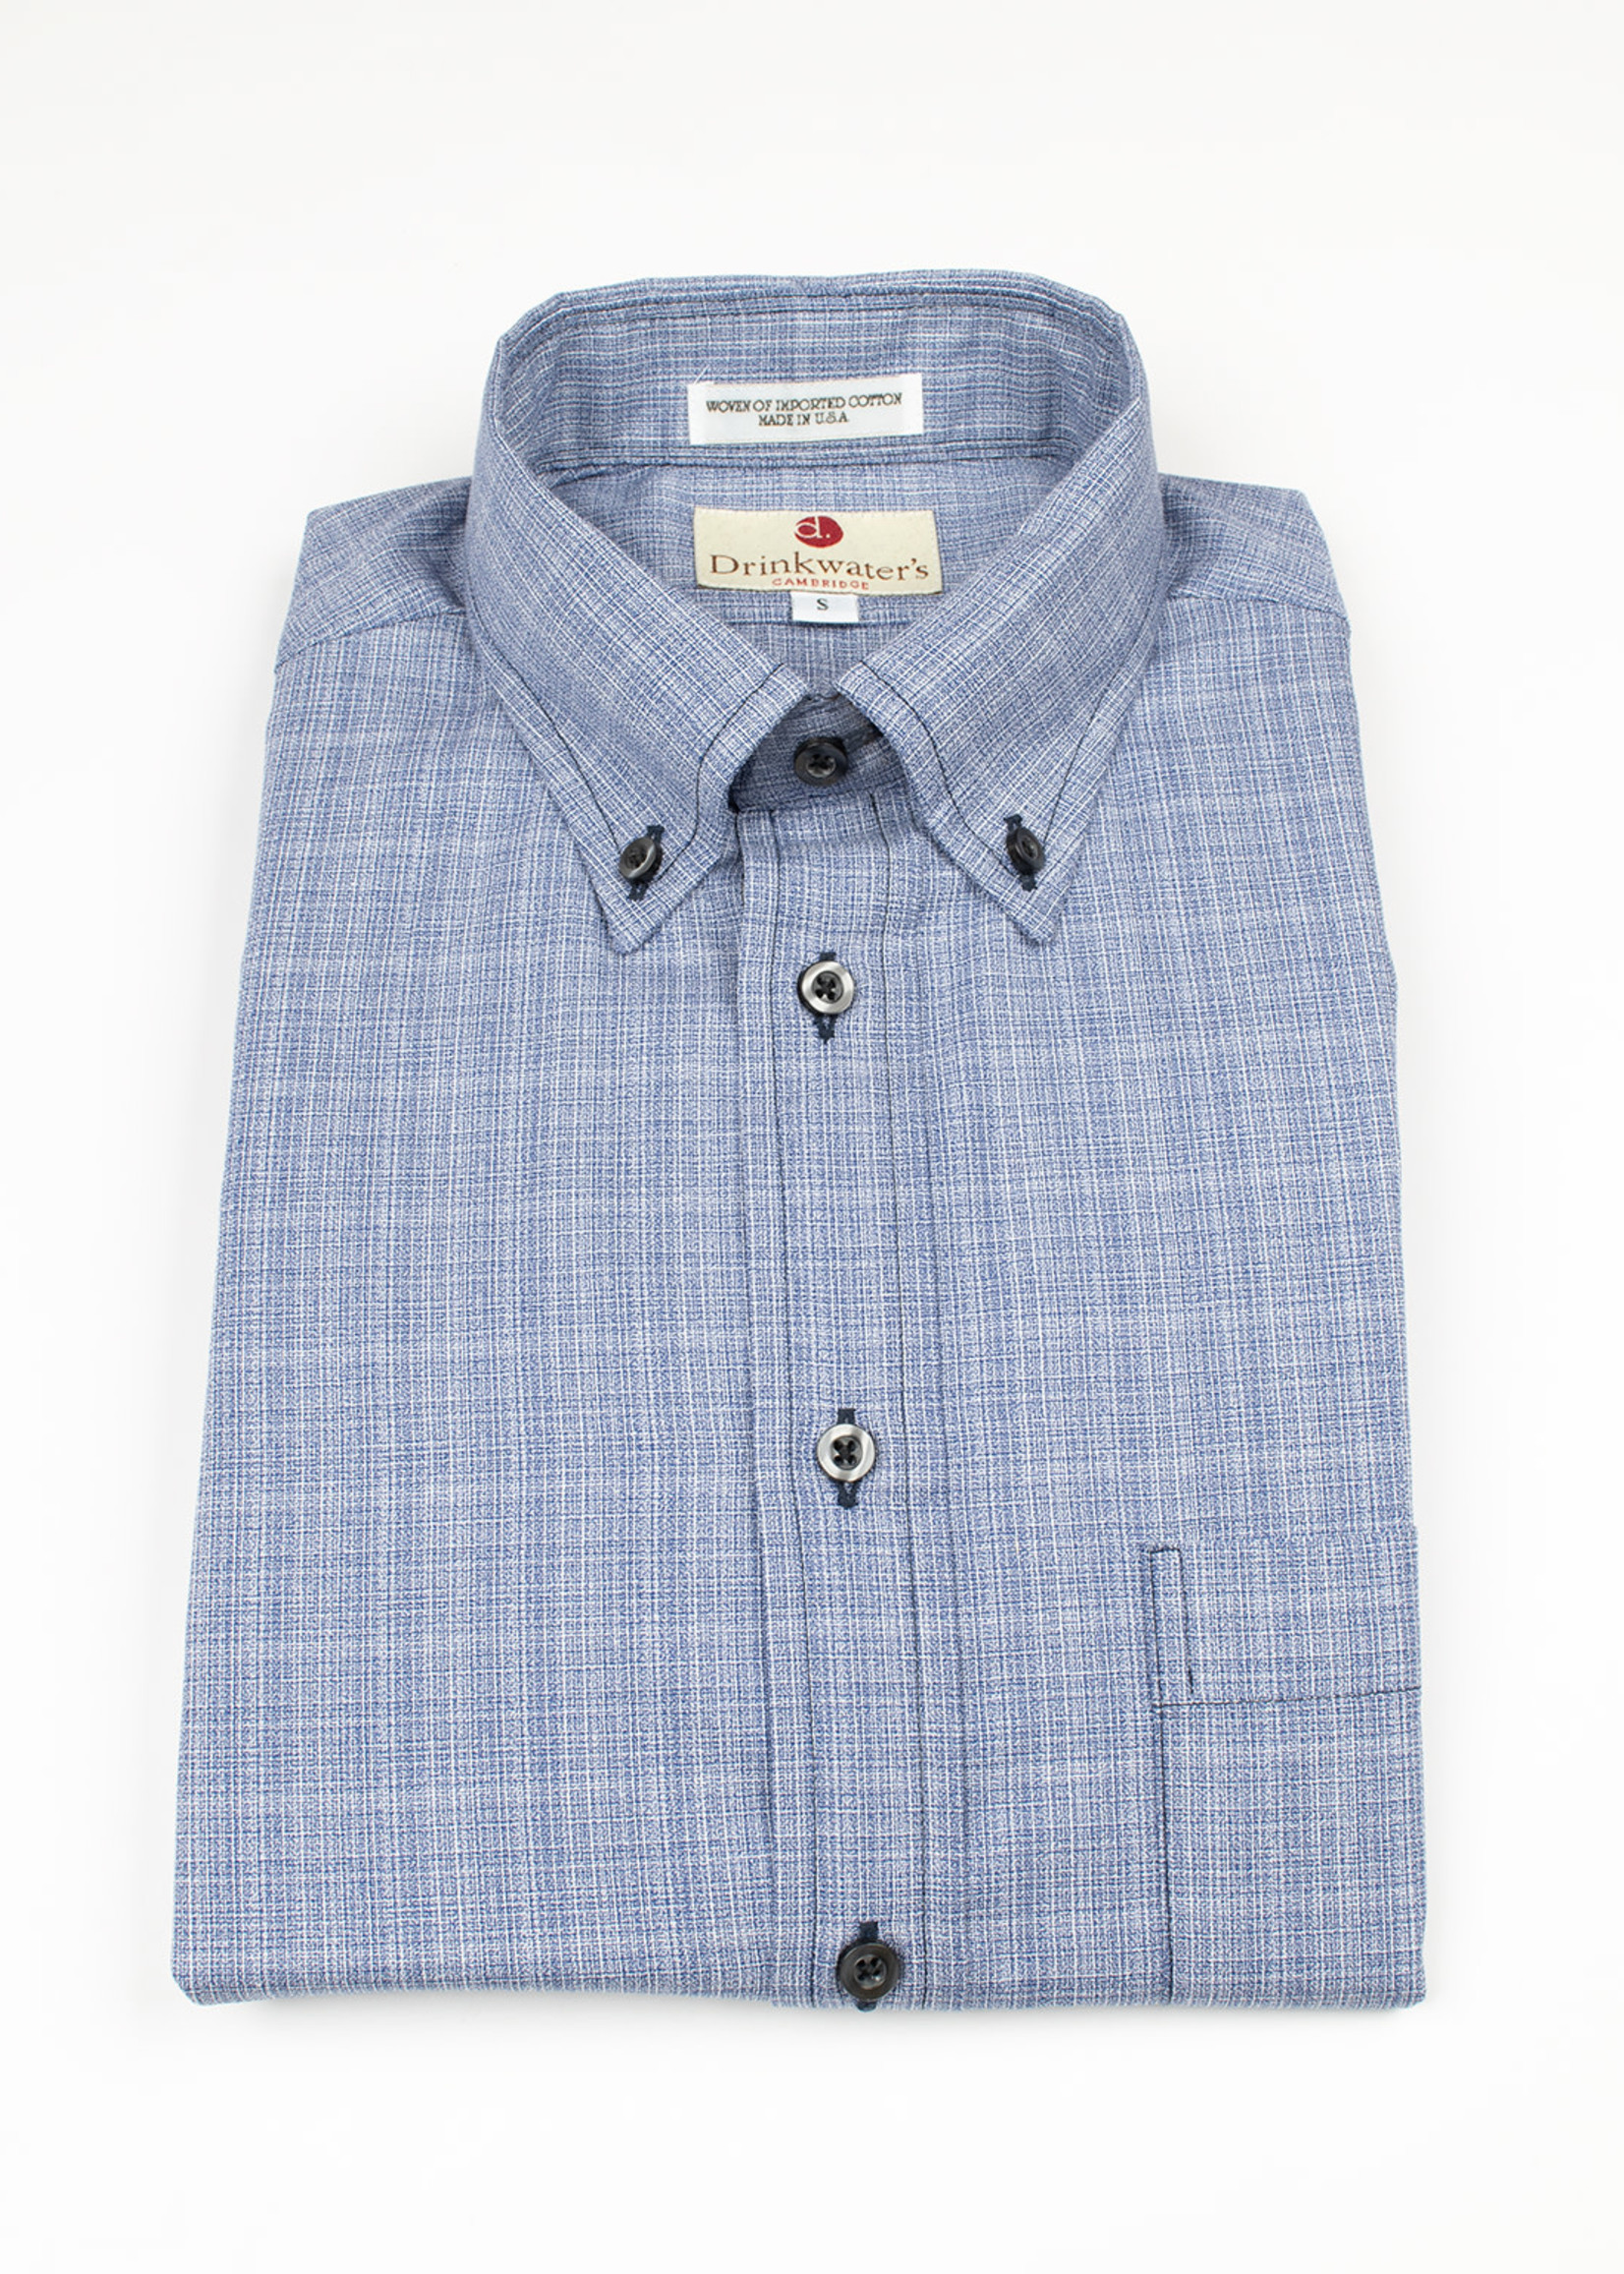 Navy Cotton Basketweave BD Sport Shirt by Drinkwater's